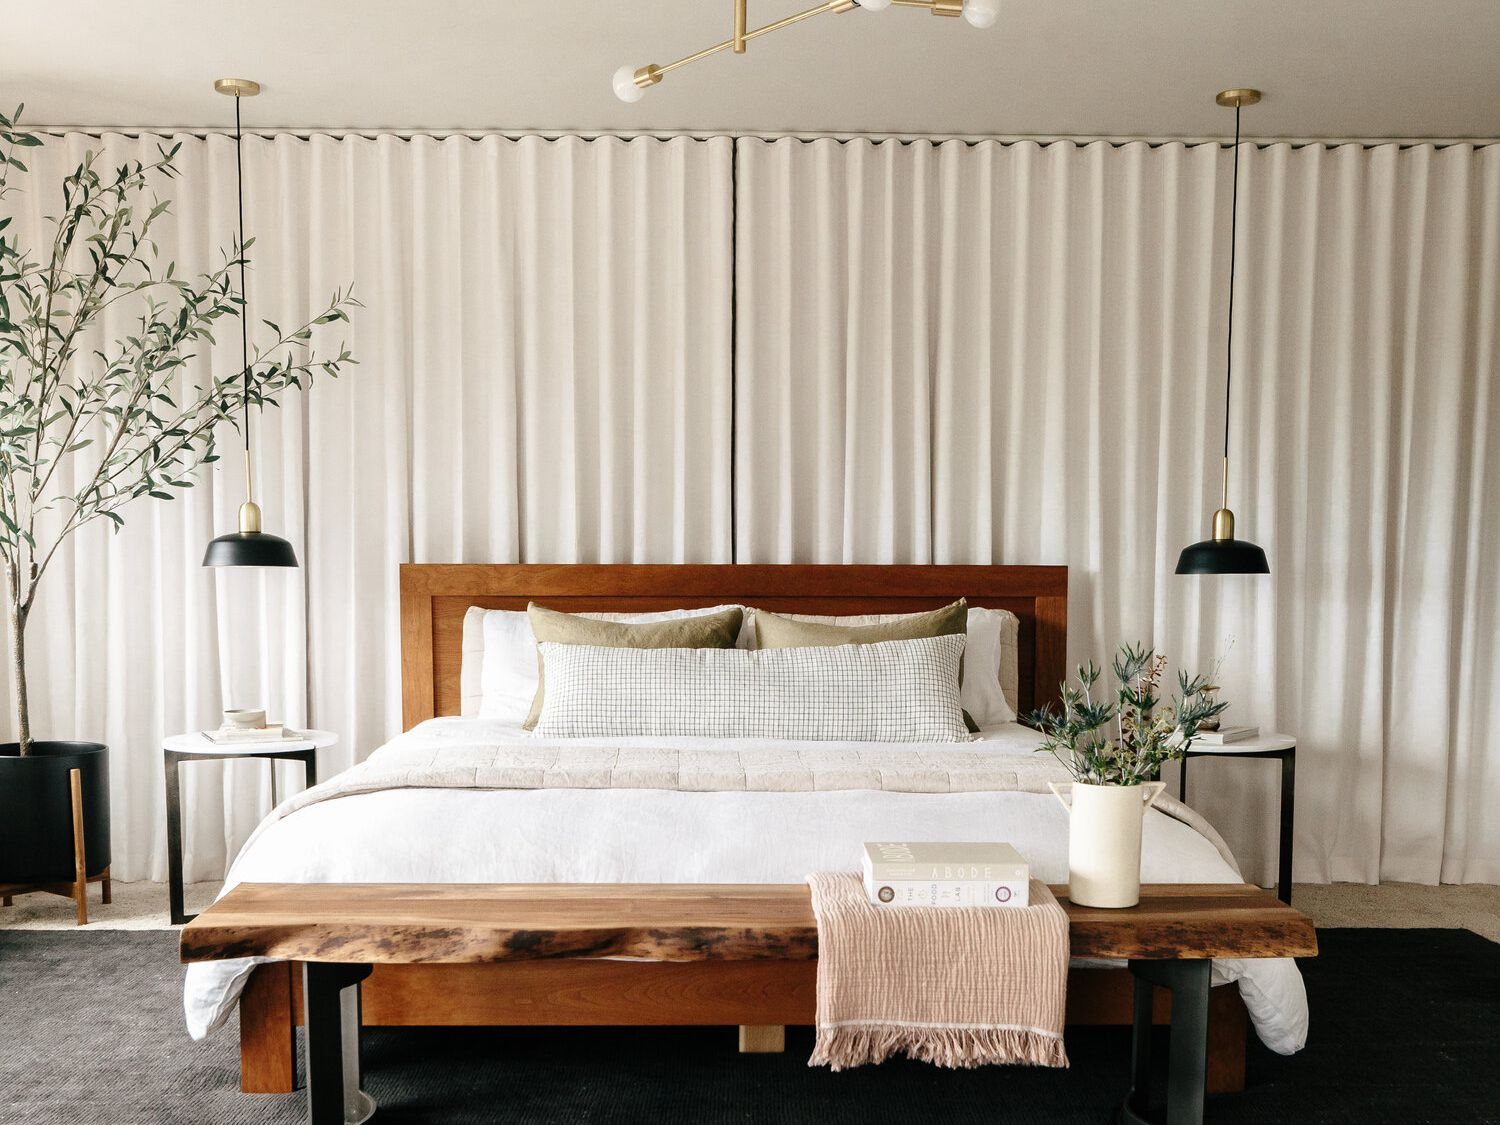 10 Modern Bedroom Ideas That Are Contemporary Yet Cozy